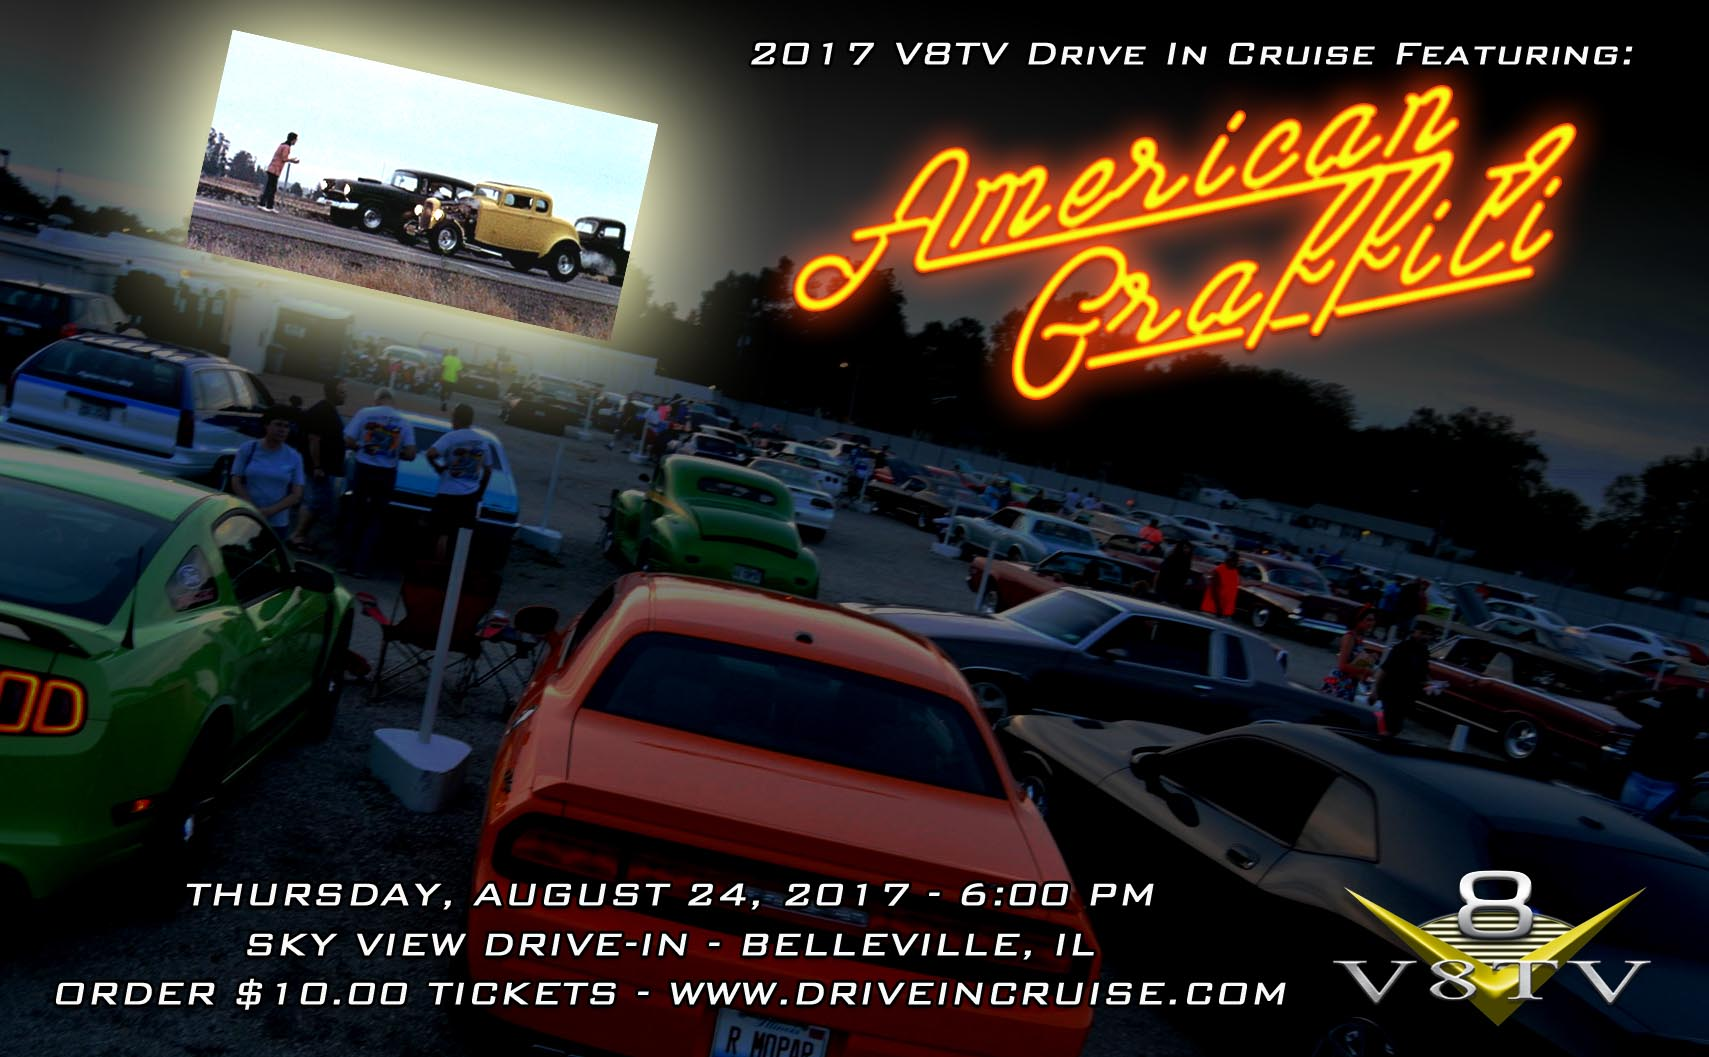 V8TV 2017 Drive In Cruise